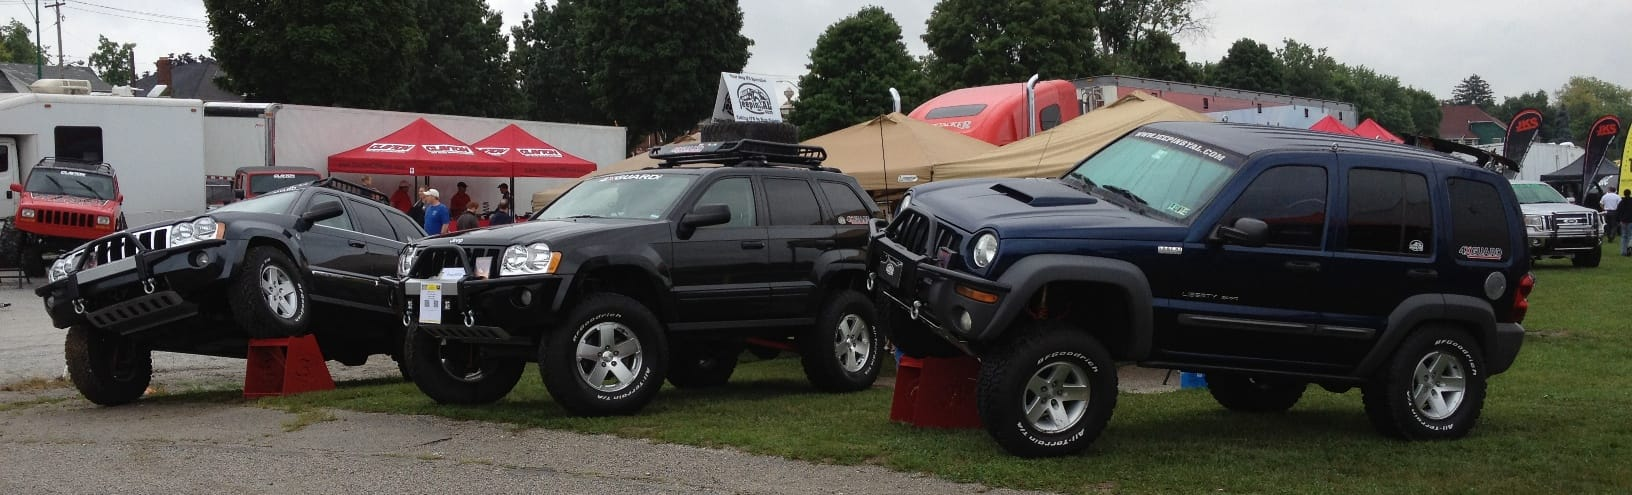 hight resolution of jeeps at pa jeep show jeep grand cherokee